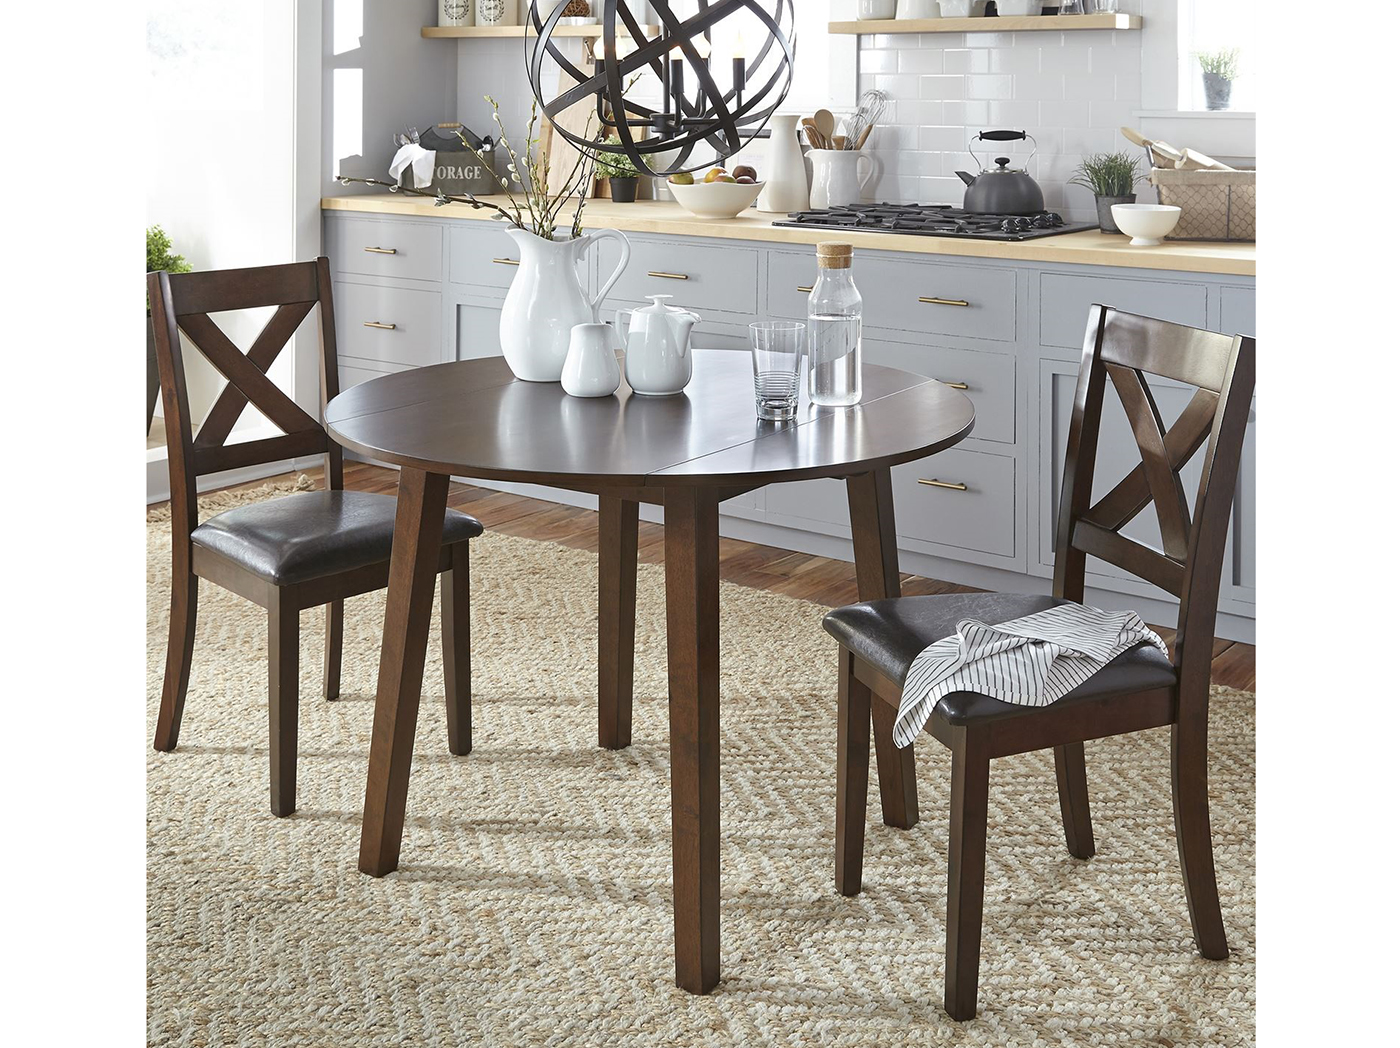 Thornton 3-pc. Drop Leaf Dining Set